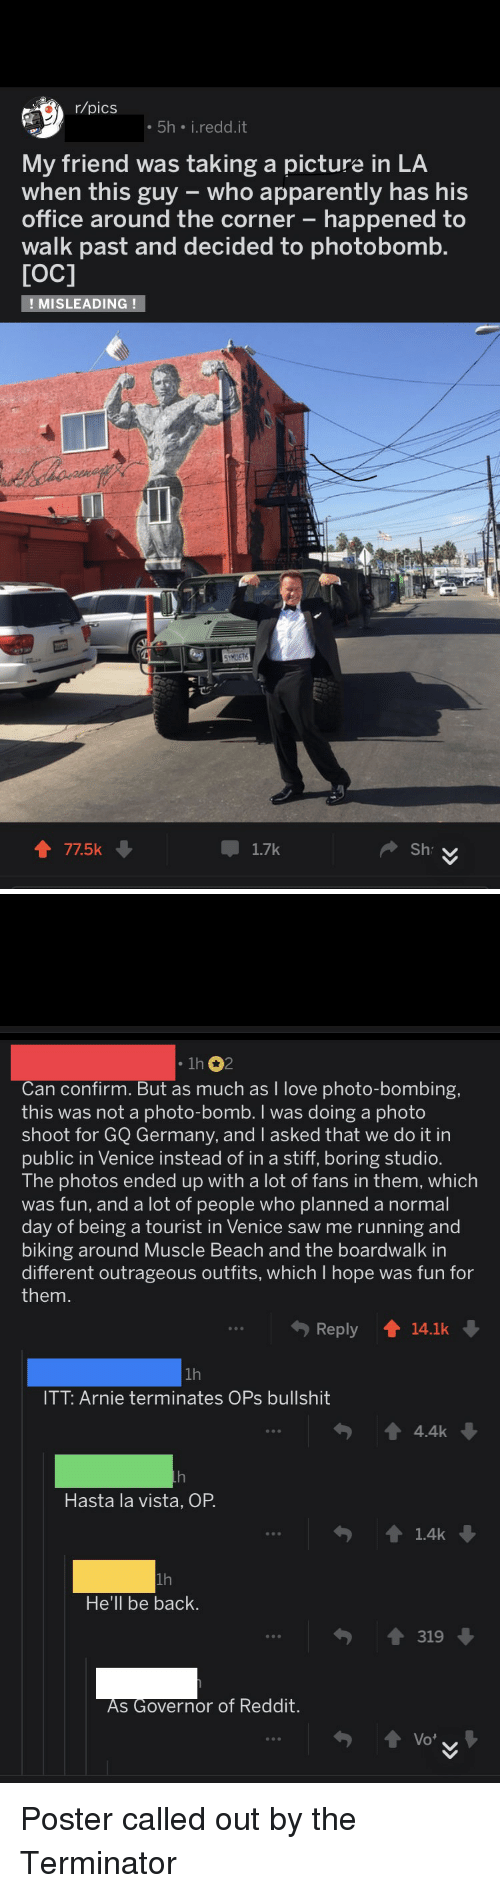 Apparently, Love, and Photobomb: r/pics  5h i.redd.it  My friend was taking a picture in LA  when this guy who apparently has his  office around the corner - happened to  walk past and decided to photobomb  TOC]  MISLEADING!   1h 2  Can confirm. But as much as I love photo-bombing,  this was not a photo-bomb. I was doing a photo  shoot for GQ Germany, and l asked that we do it in  ublic in Venice instead of in a stiff, boring studio  The photos ended up with a lot of fans in them, which  was fun, and a lot of people who planned a normal  day of being a tourist in Venice saw me running and  biking around Muscle Beach and the boardwalk in  different outrageous outfits, which I hope was fun for  them  Reply  14.1k  ITT: Arnie terminates OPs bullshit  4.4k  Hasta la vista, OP  1.4k  1h  He'll be back  319  S Governor of Reddit. Poster called out by the Terminator